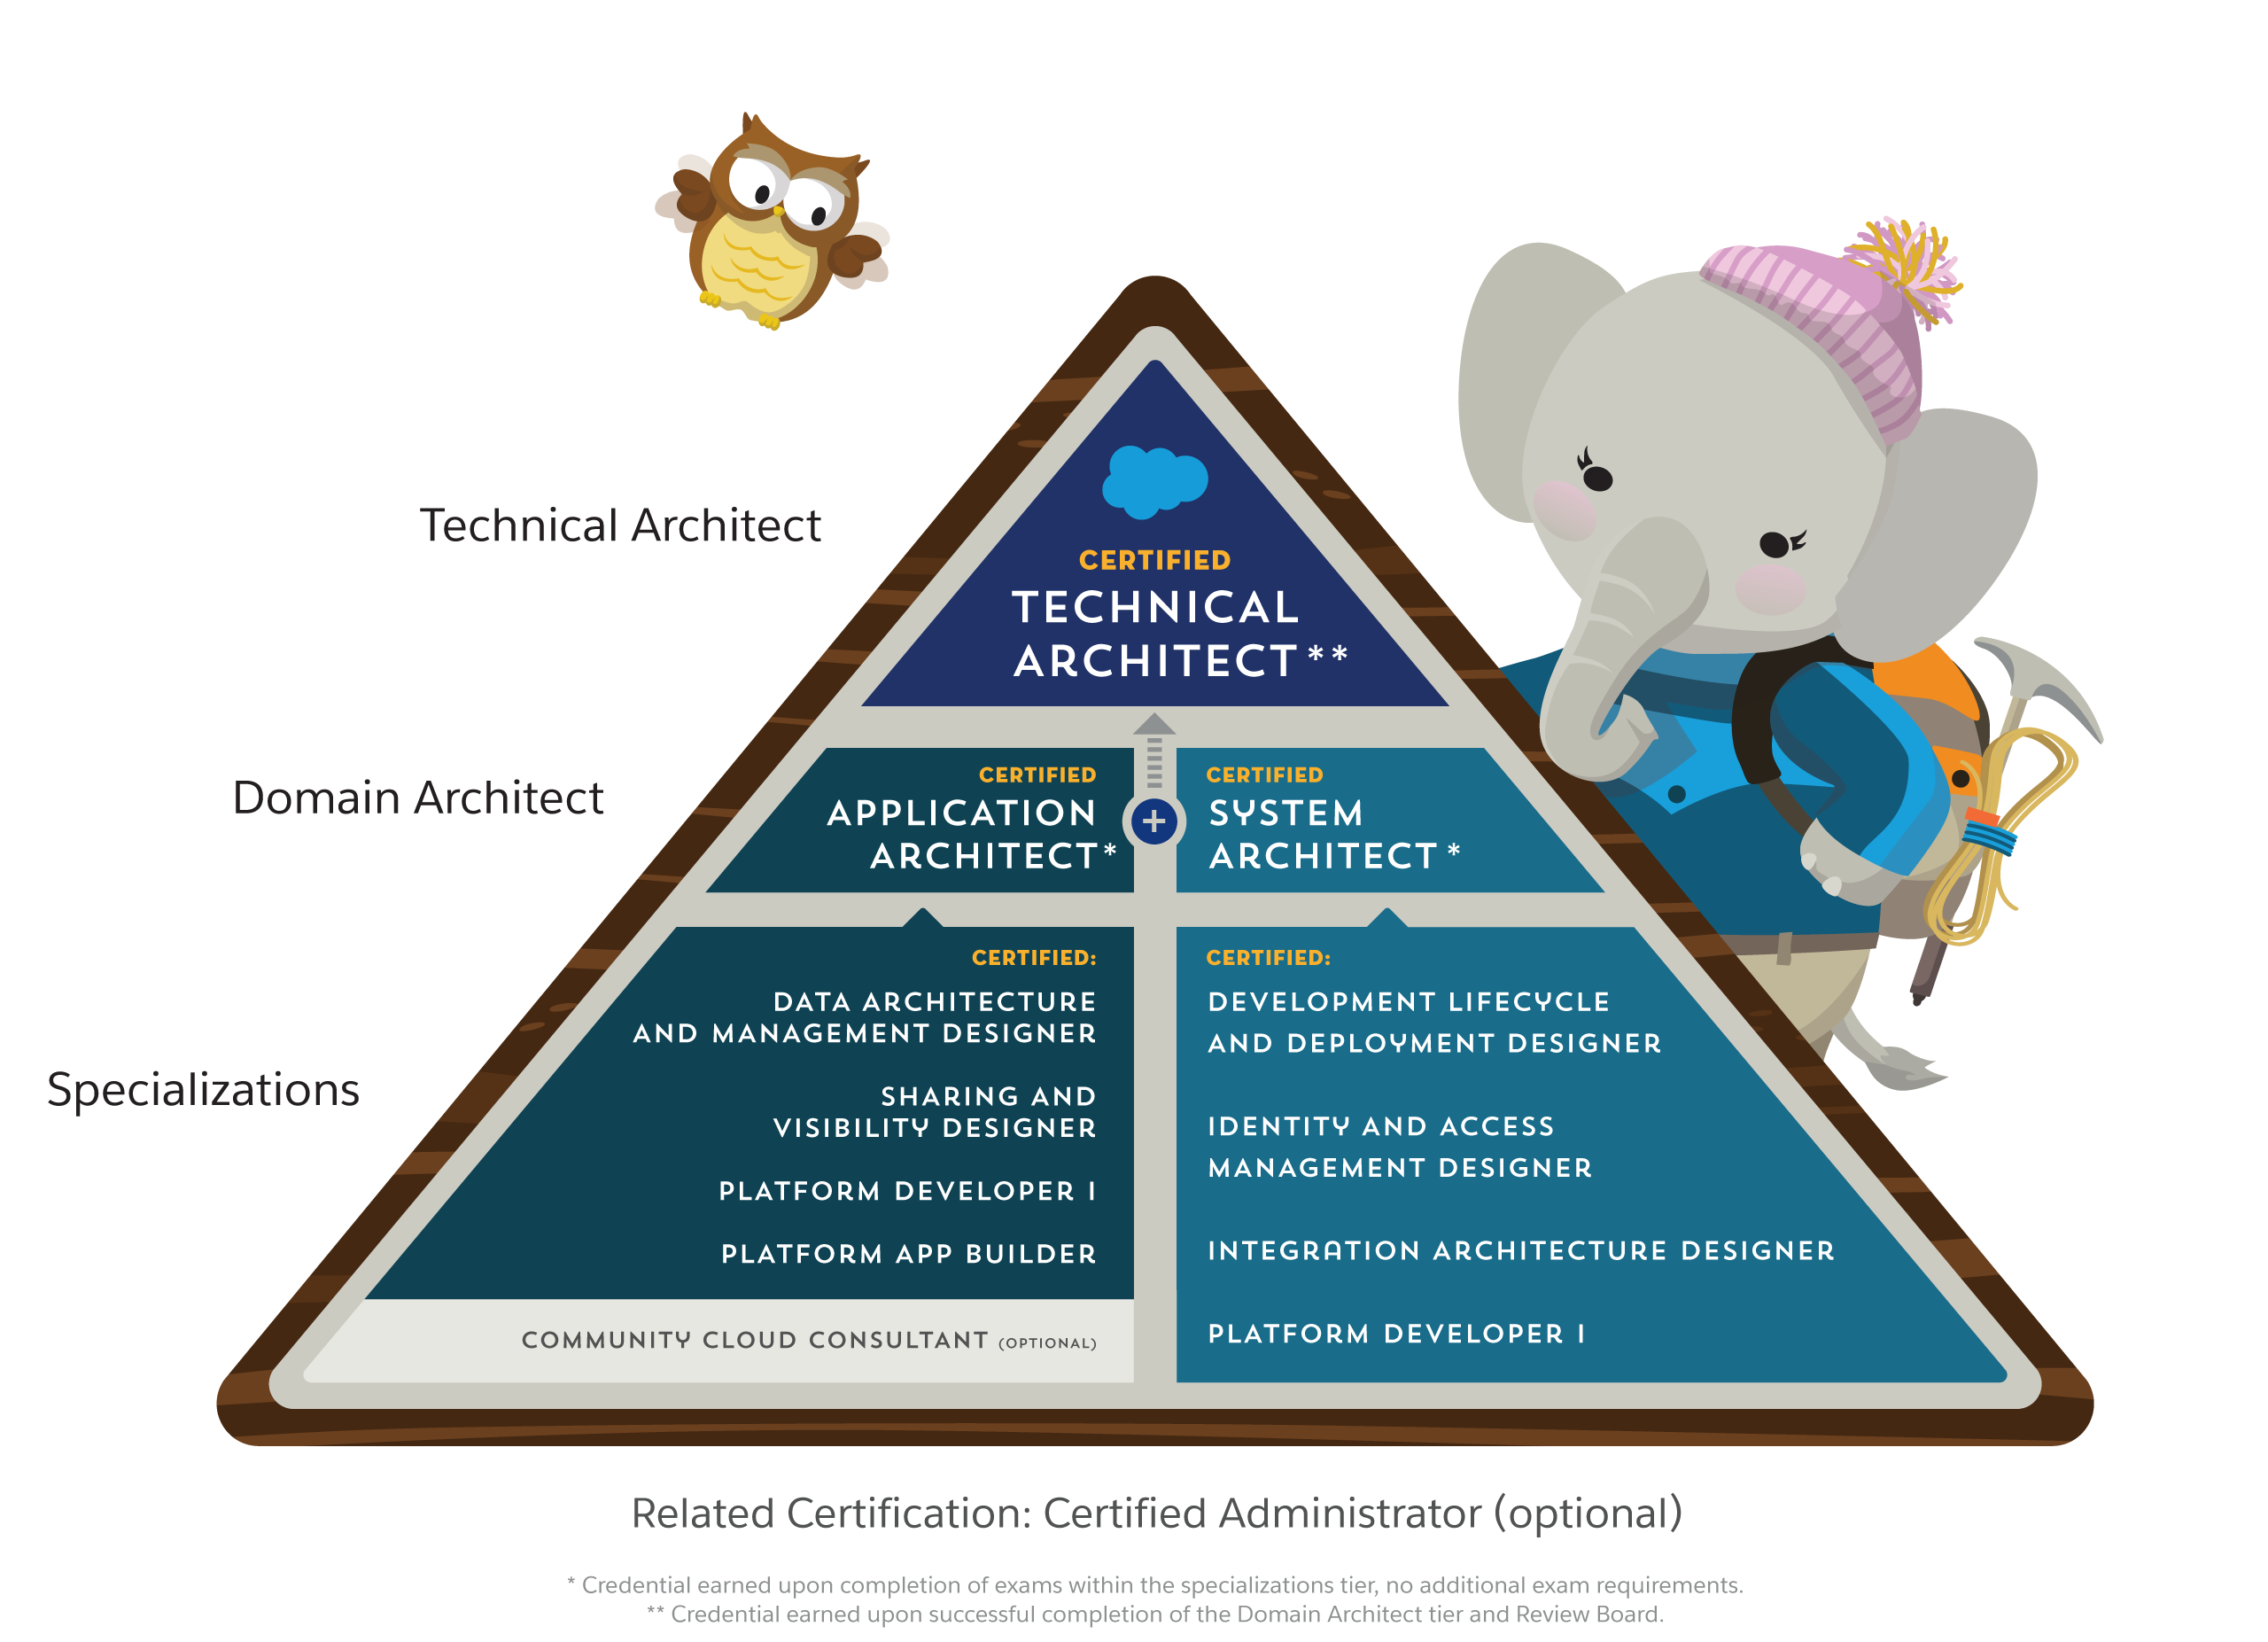 Salesforce Architect Exam Study Guide, Salesforce Application Architect, Salesforce System Architect, Salesforce Data Architecture and Management Designer Certification